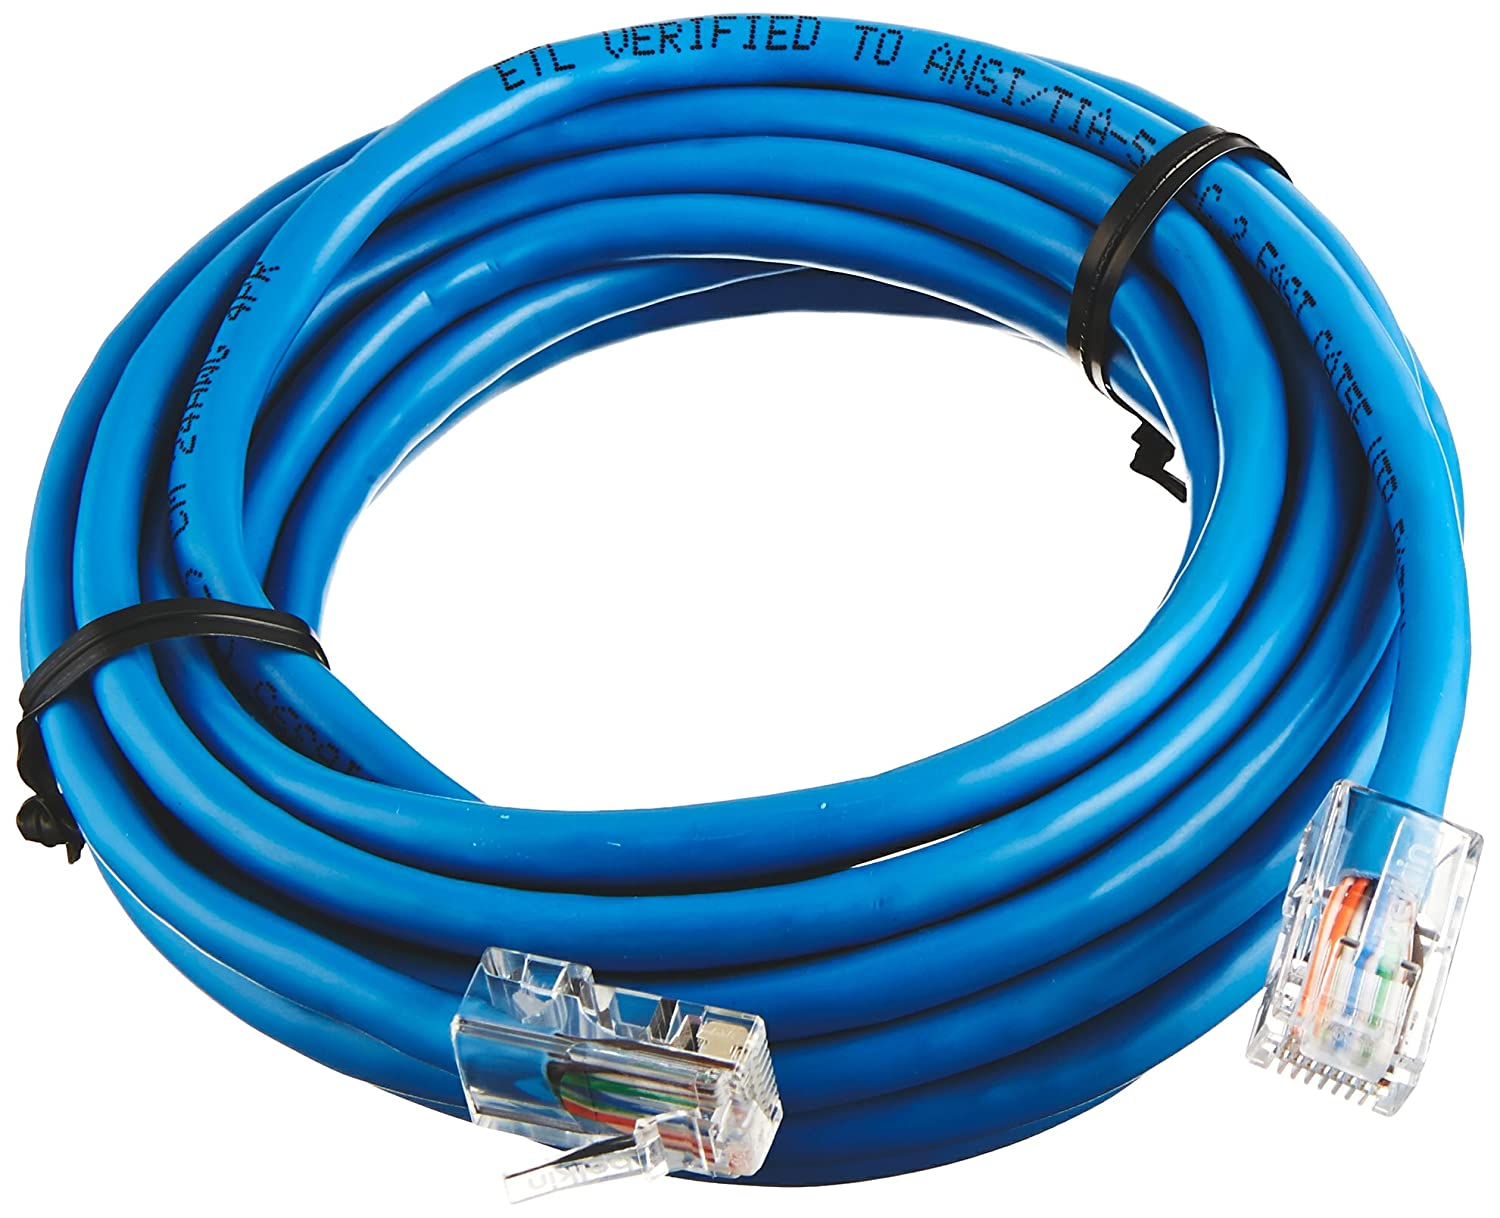 Belkin A3l791 12 Blu Foot Rj45 Cat5e Patch Cable How To Make A Category 5 Cat 5e Blue Electronics